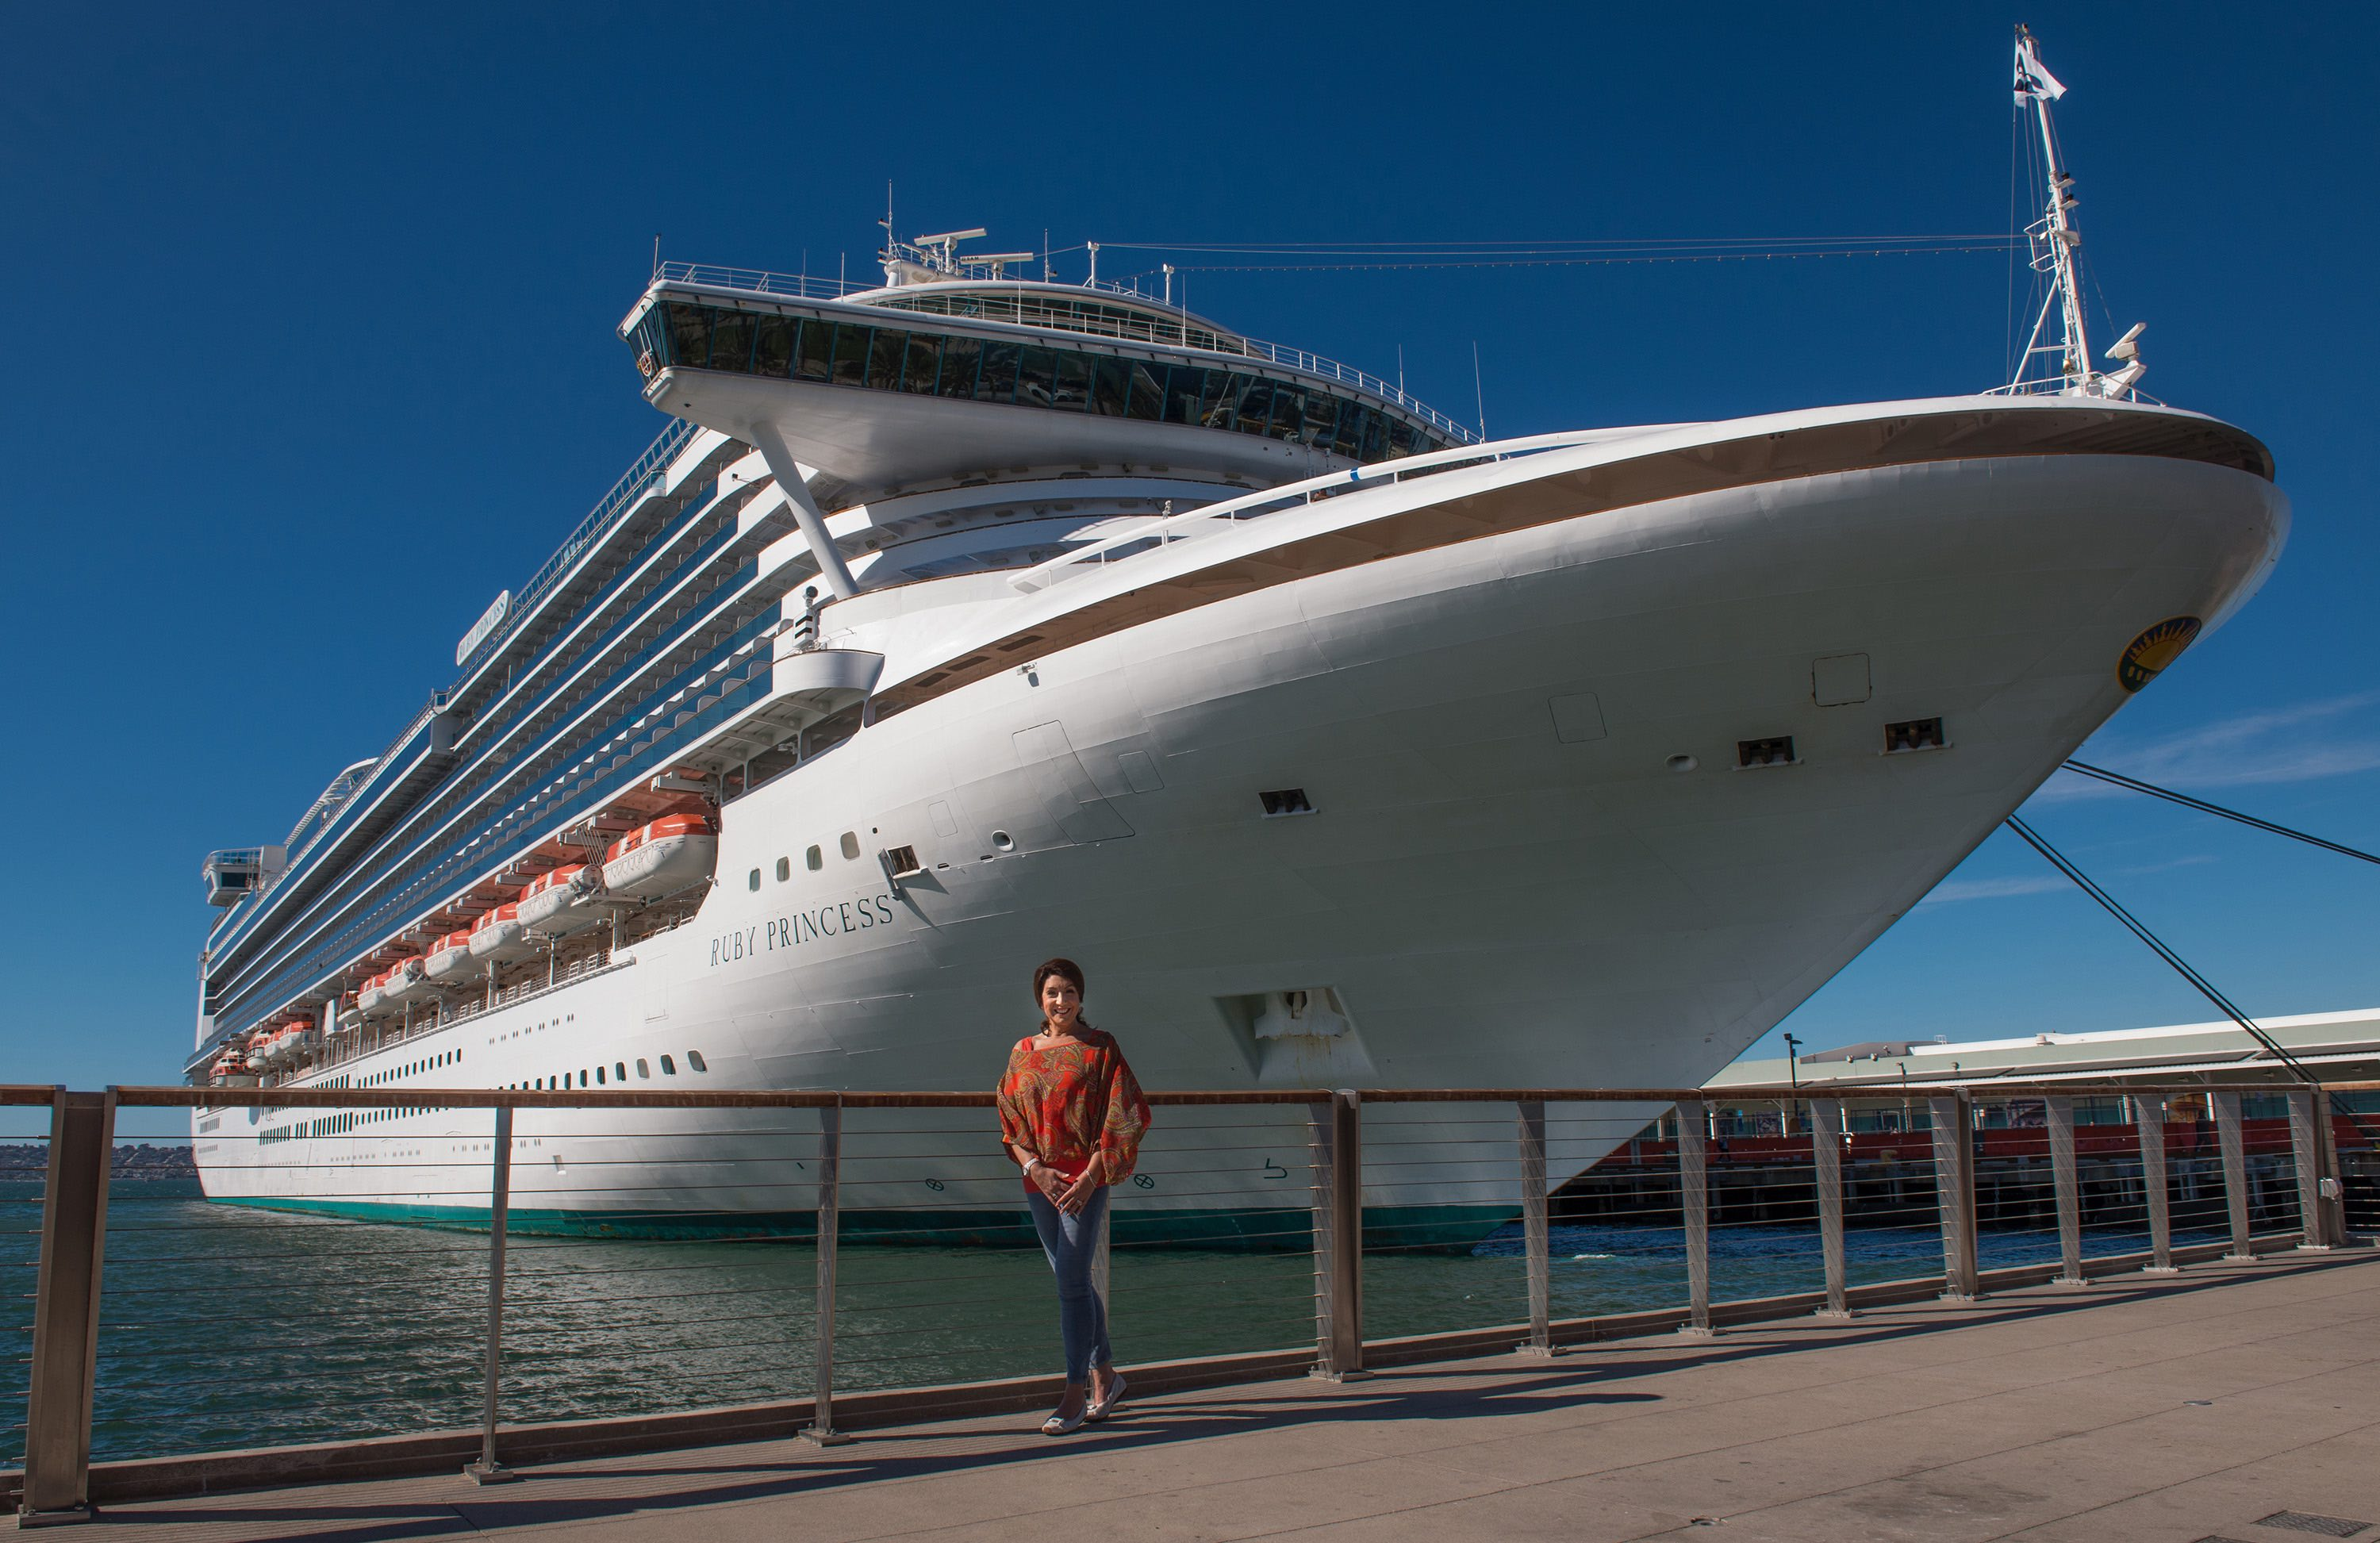 Cruising with Jane McDonald returns to our